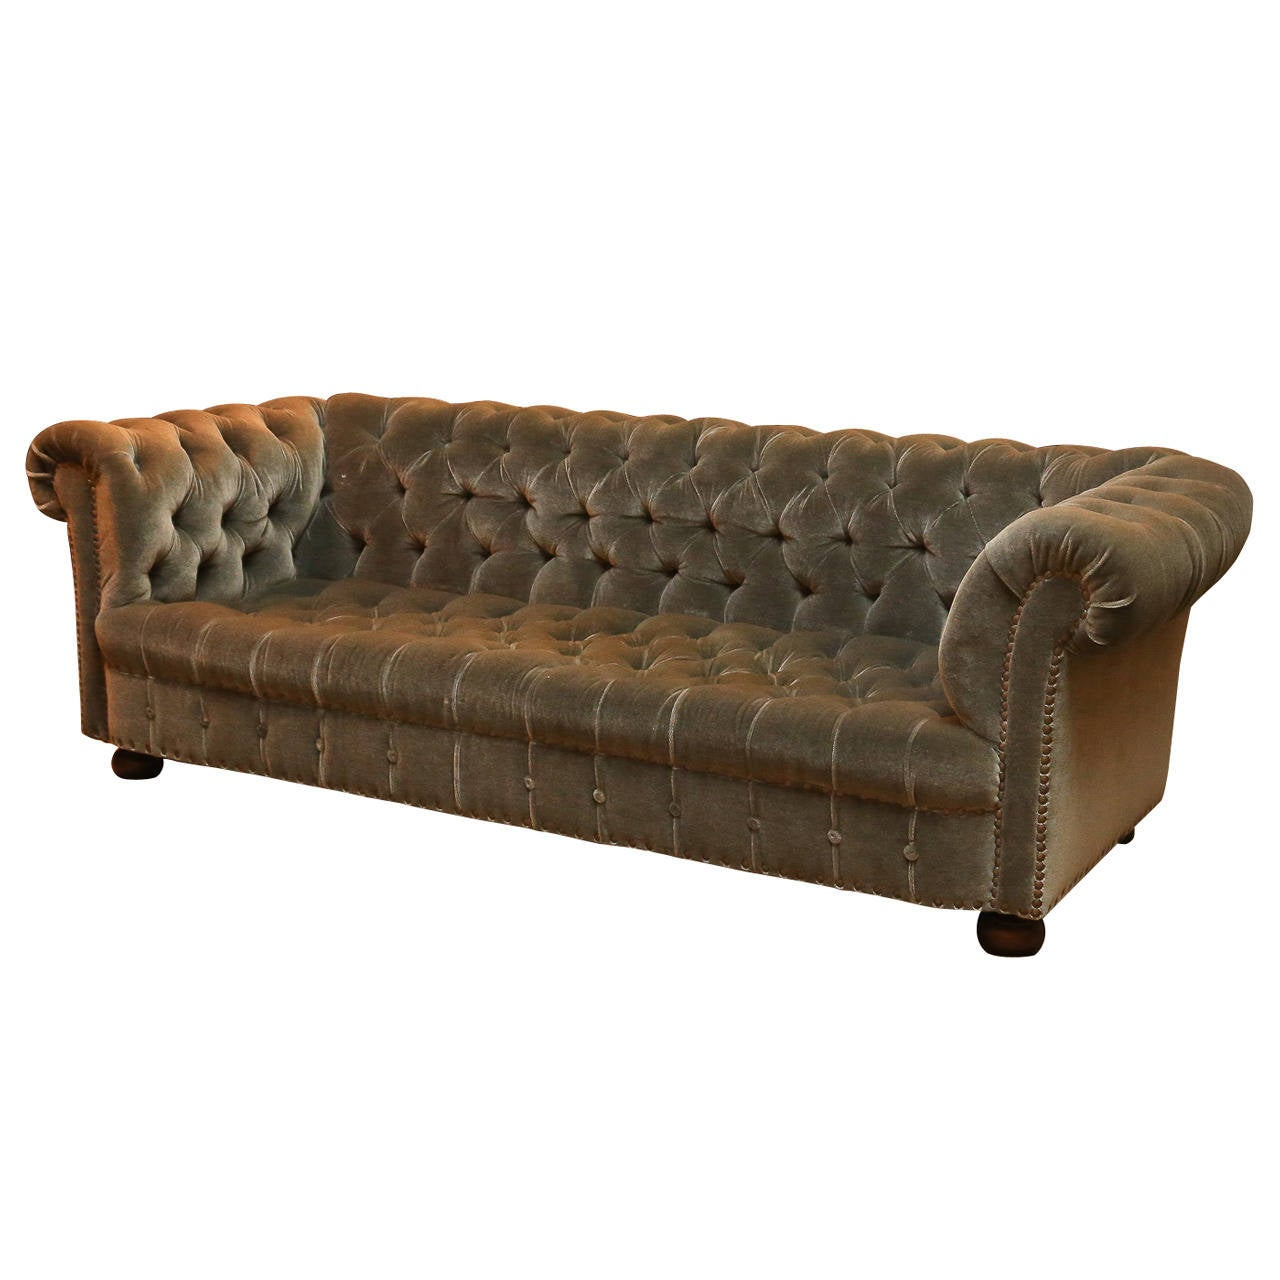 19th Century English Chesterfield in Grey Mohair